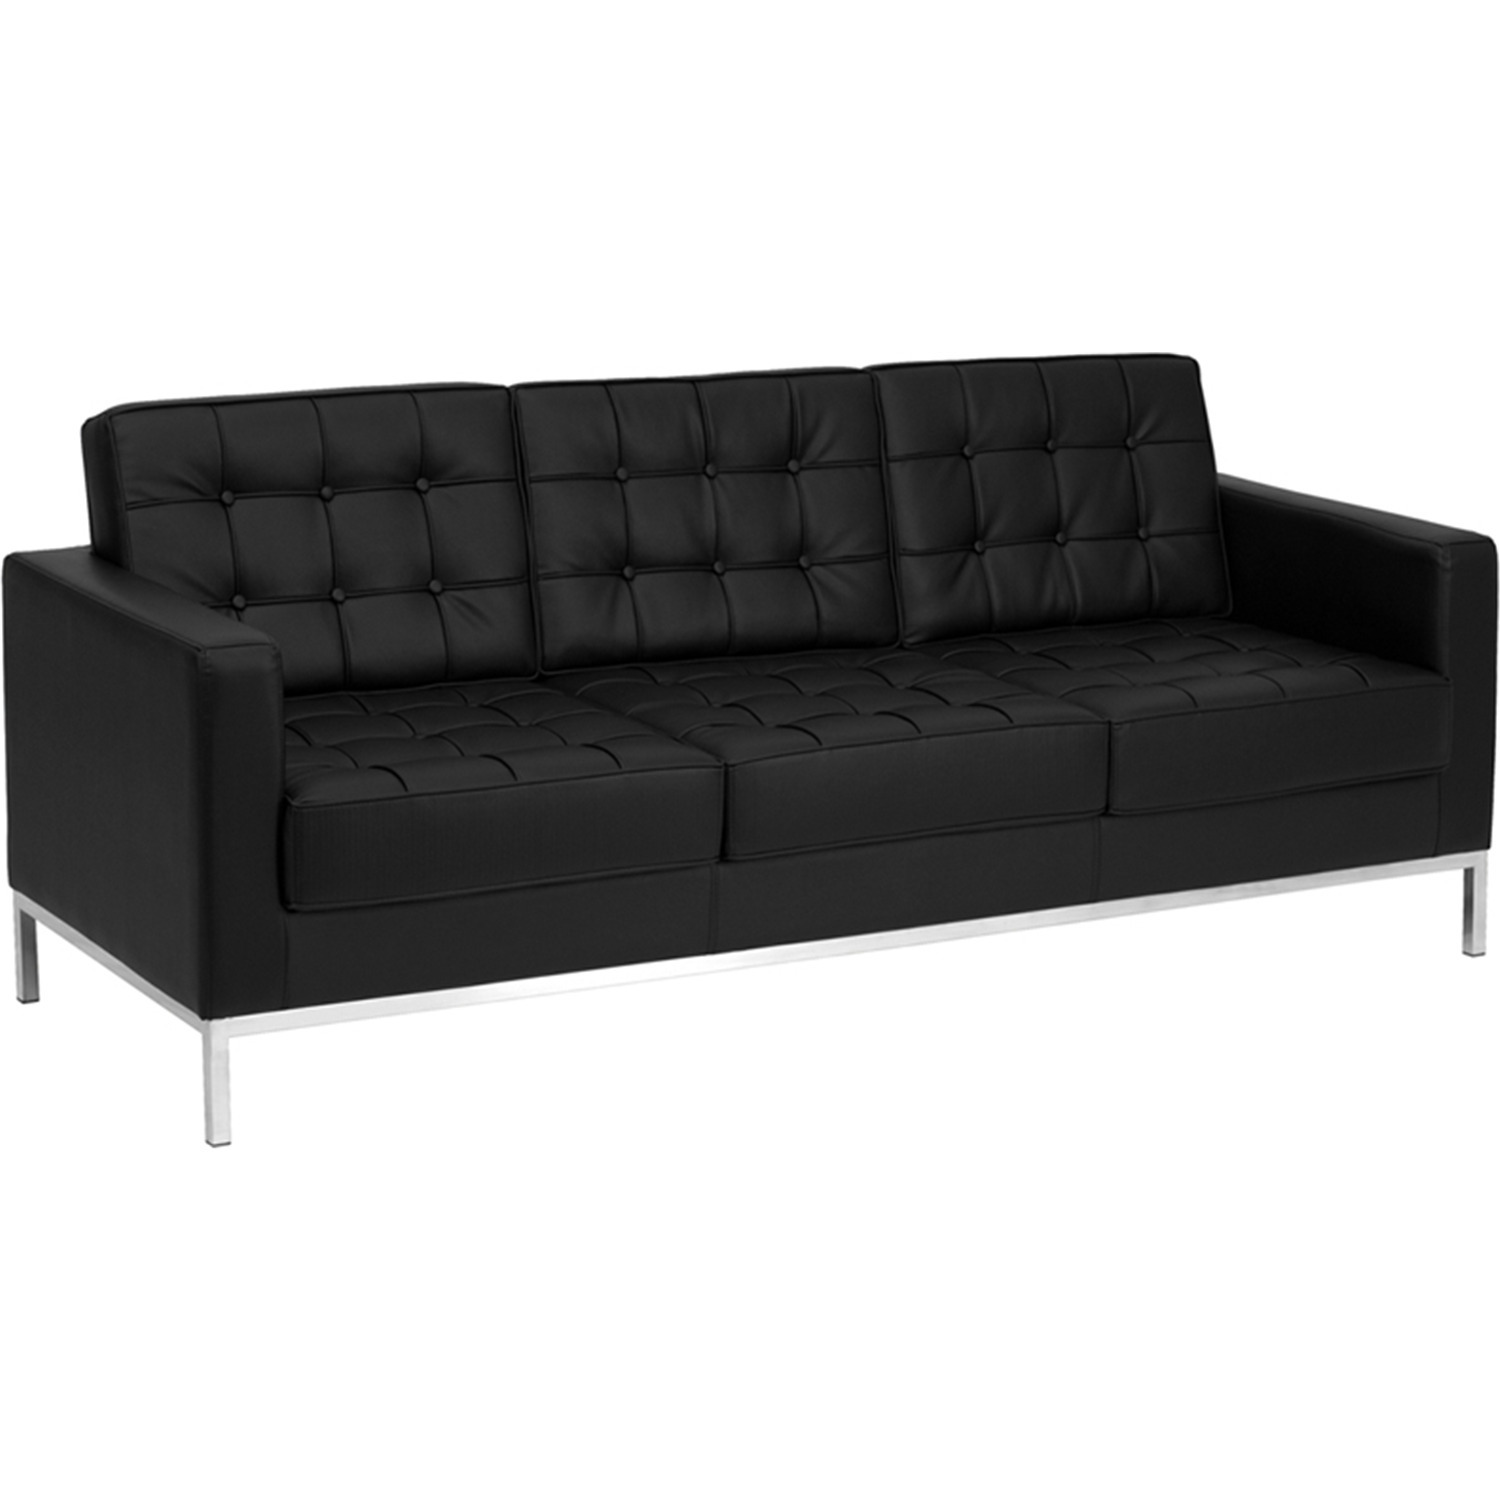 Flash Furniture ZB-LACEY-831-2-SOFA-BK-GG HERCULES Lacey Series Contemporary Black Leather Sofa ...